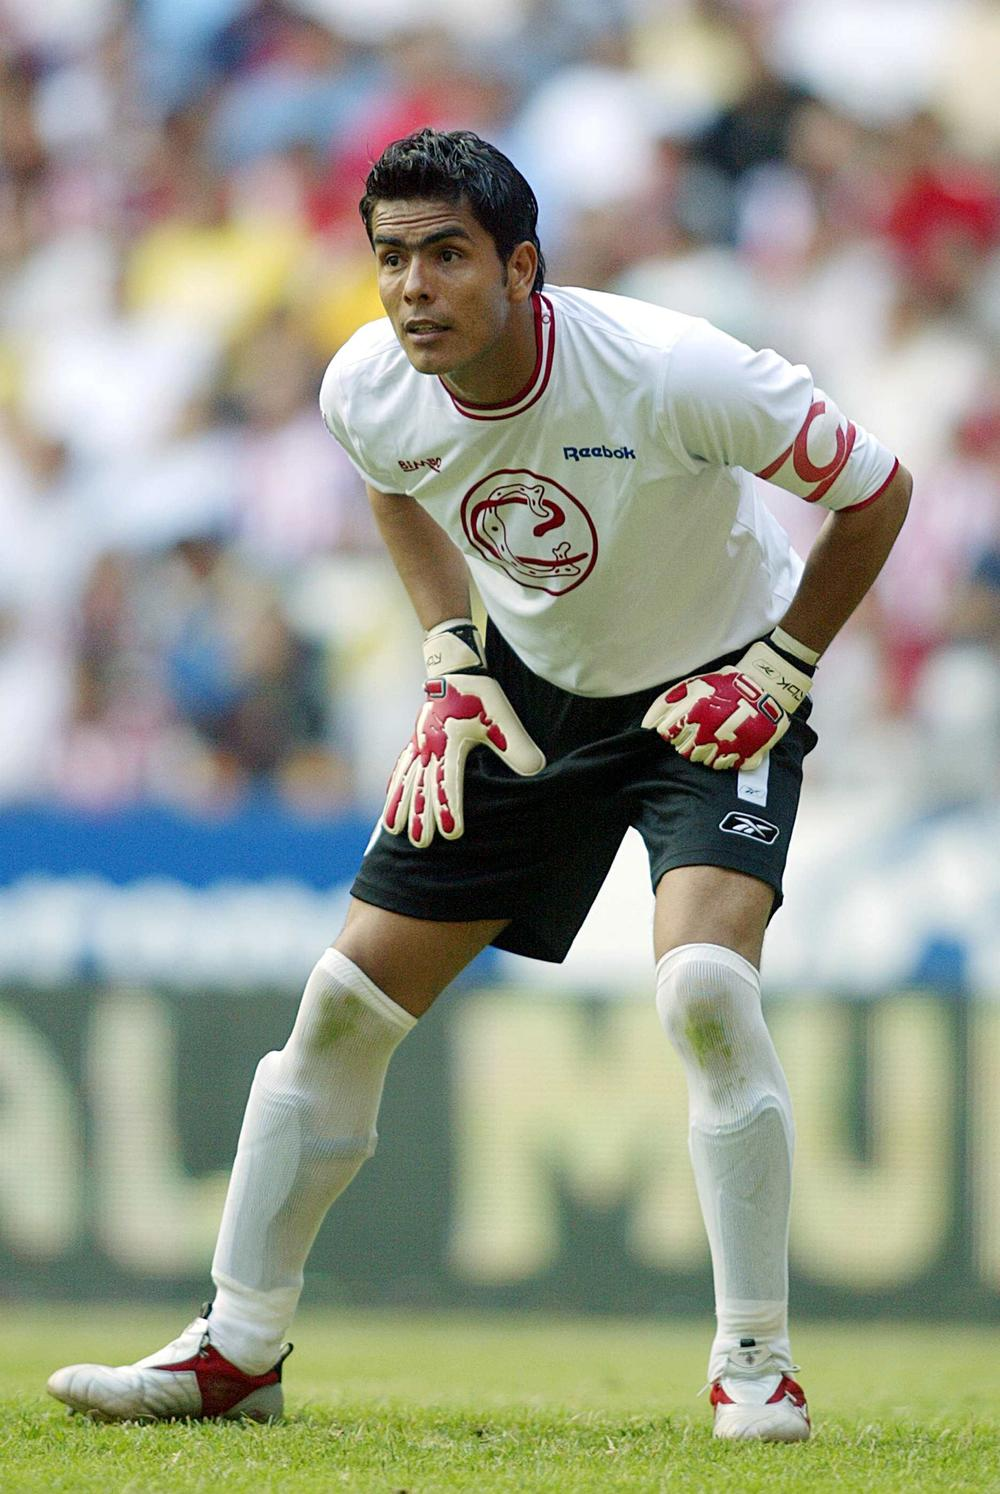 Sanchez earned 101 caps for the national team and amassed over 700 appearances in Liga MX.